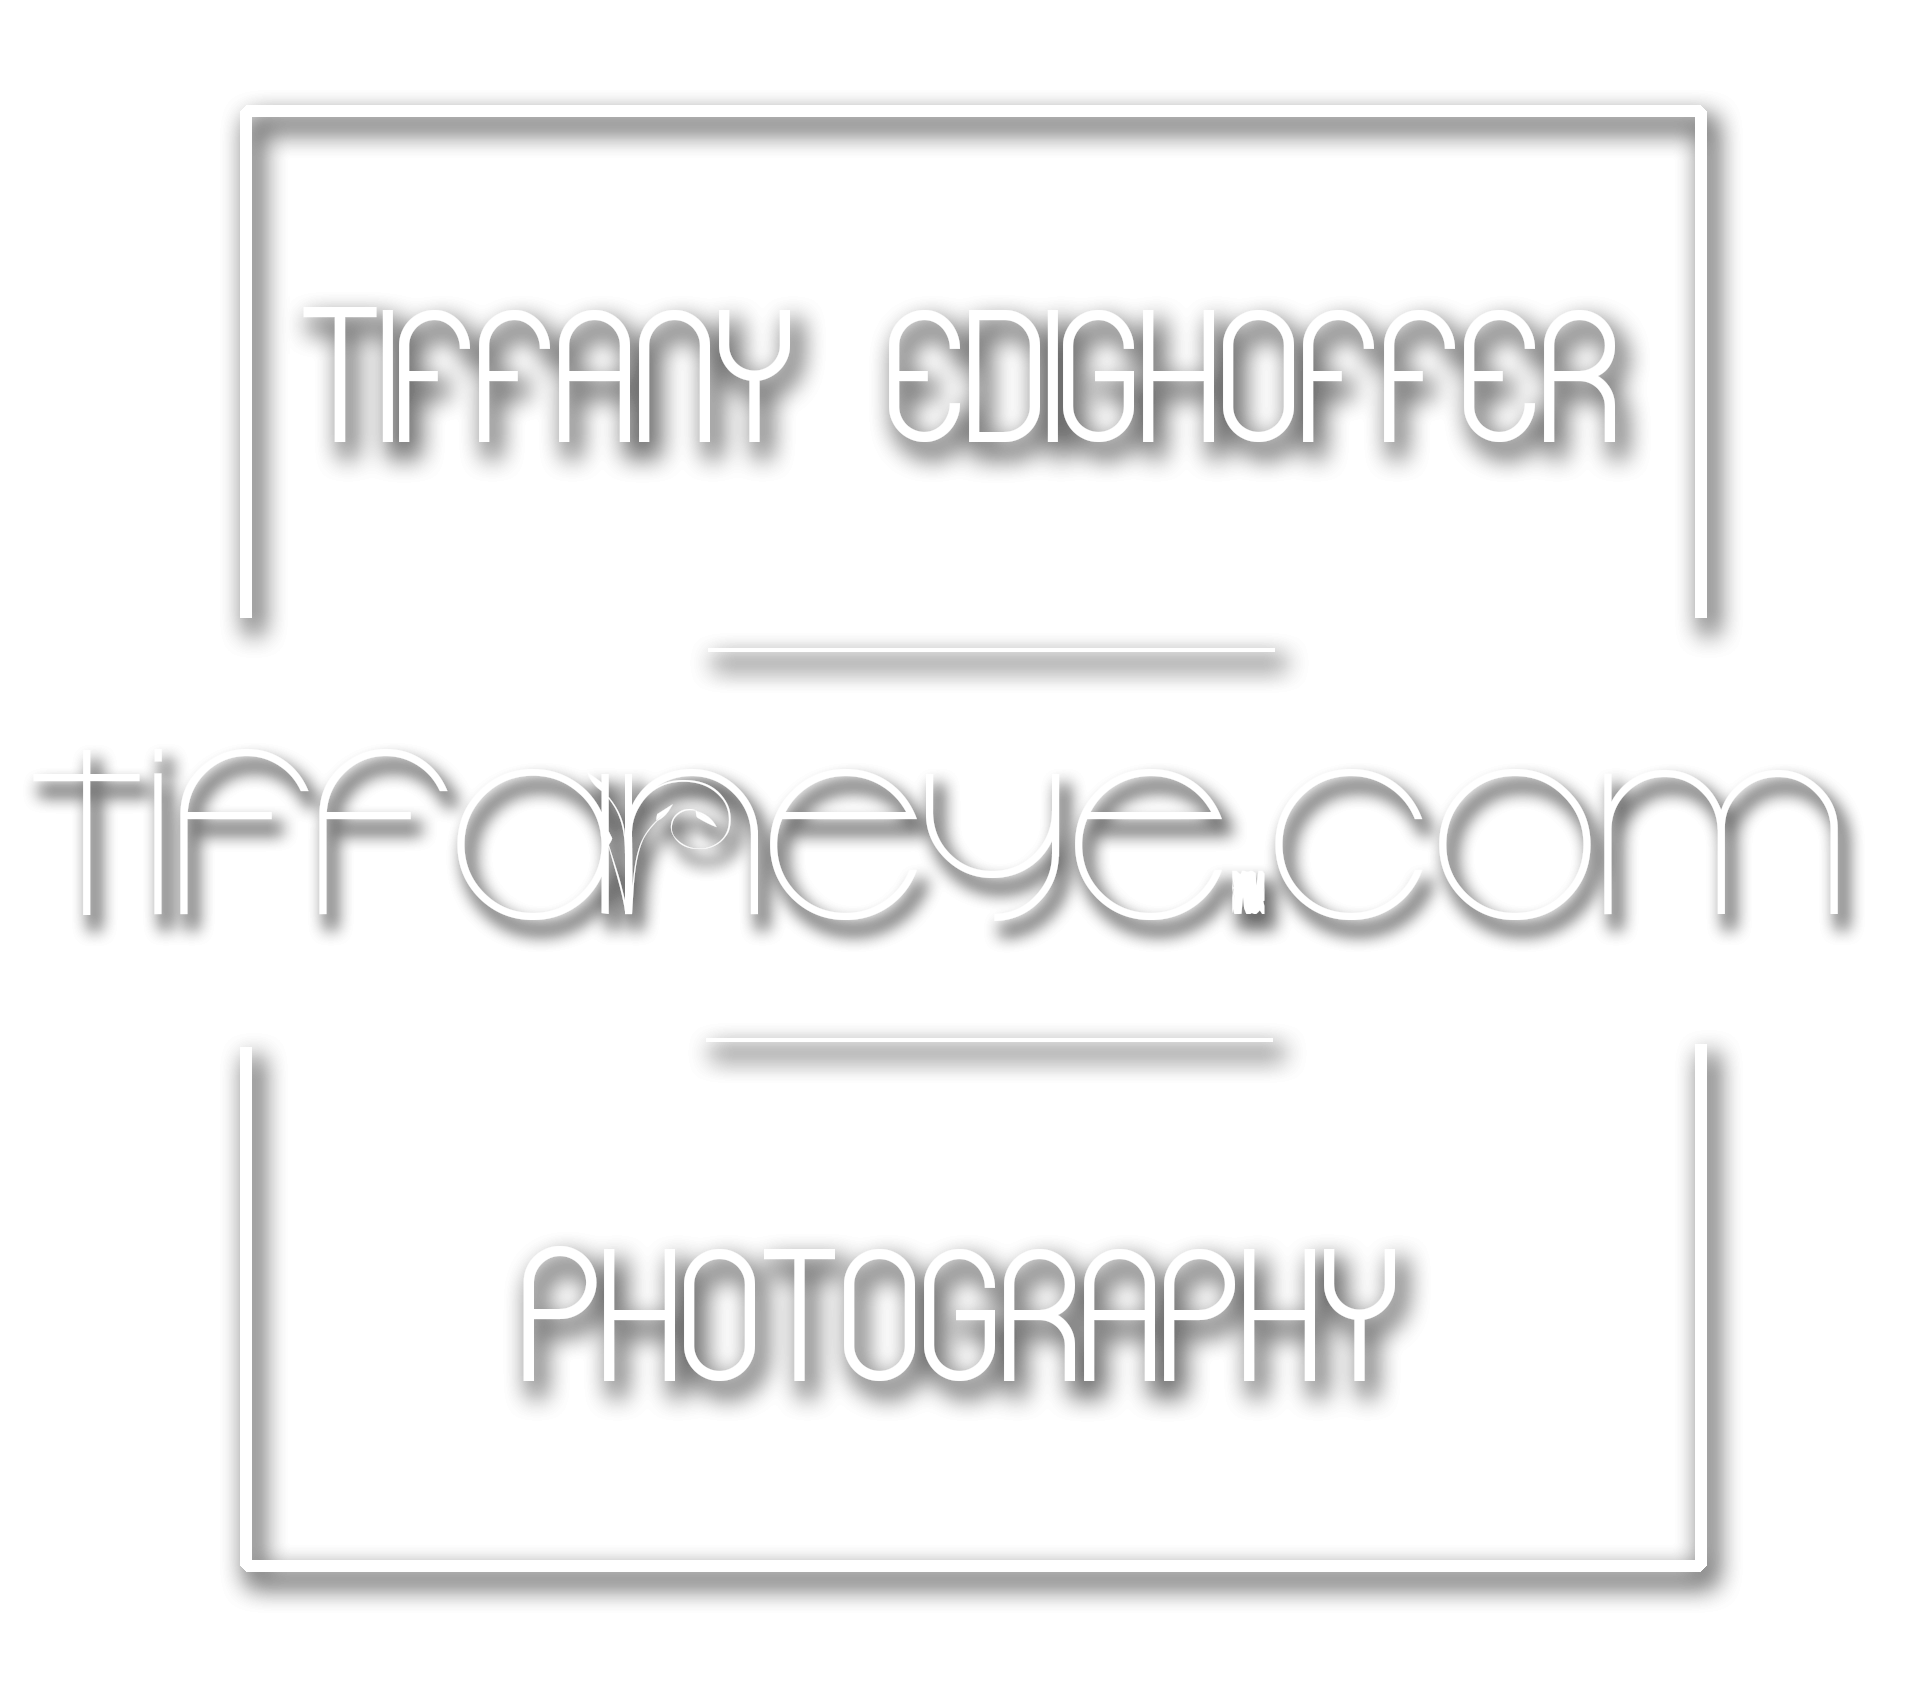 Tiffany Edighoffer Photographer